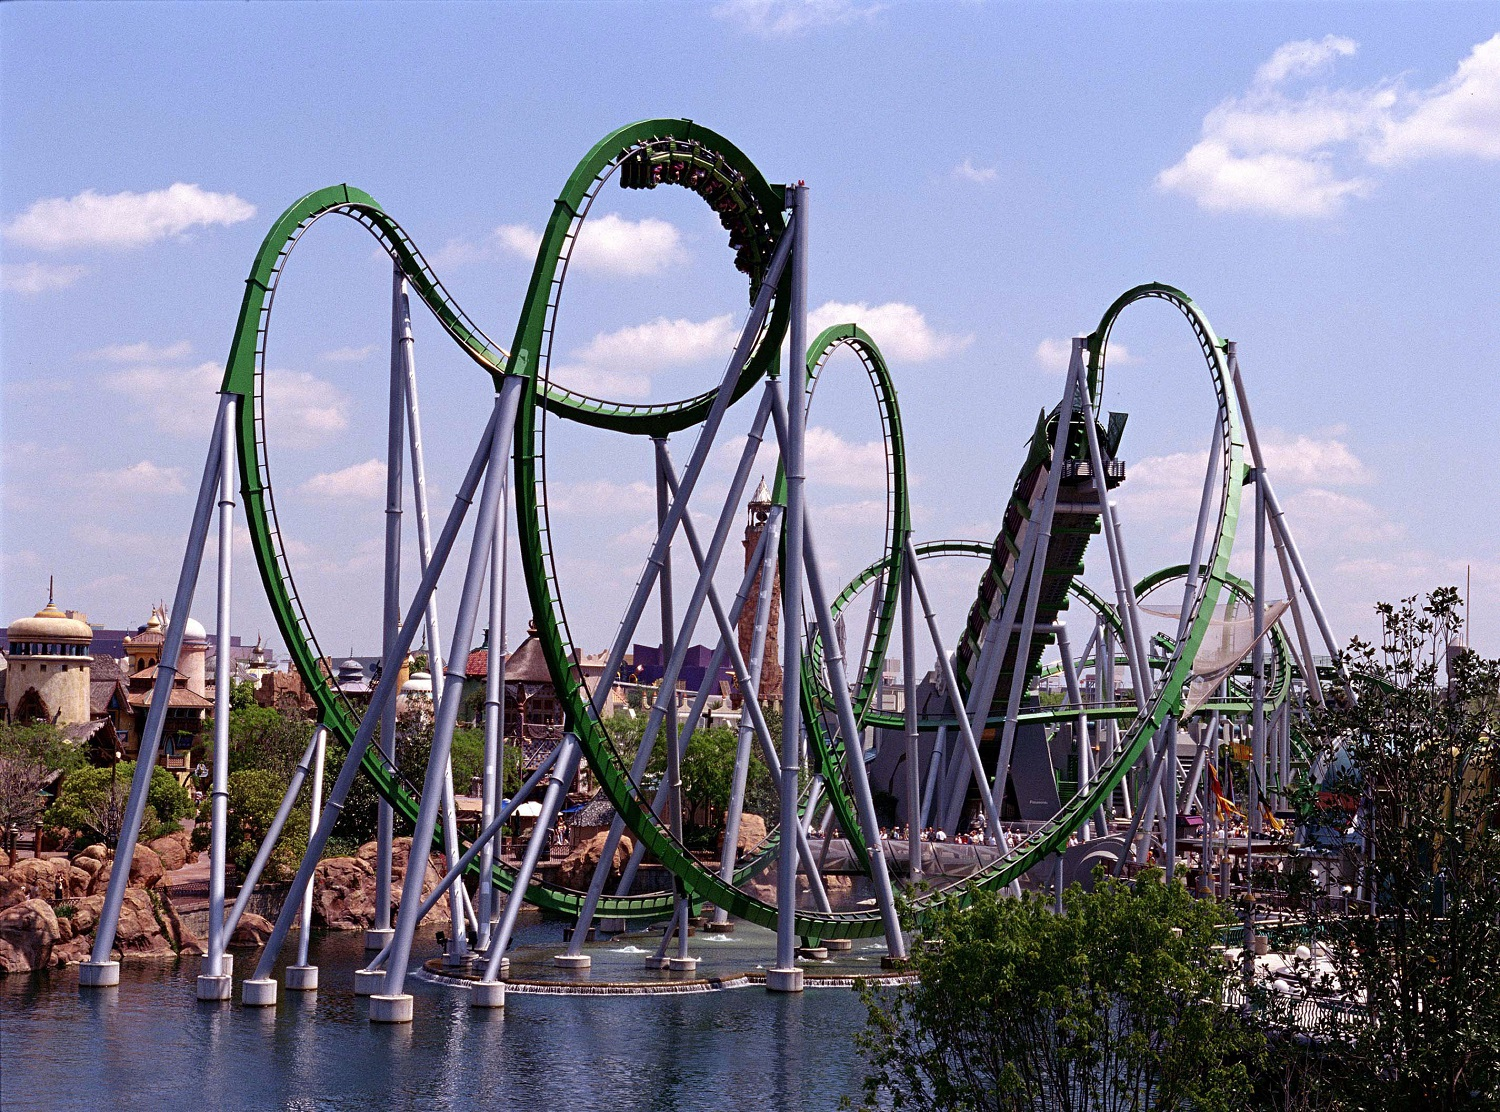 Learn about the newly revamped Incredible Hulk Coaster in Marvel Super Hero Island in Islands of Adventure.